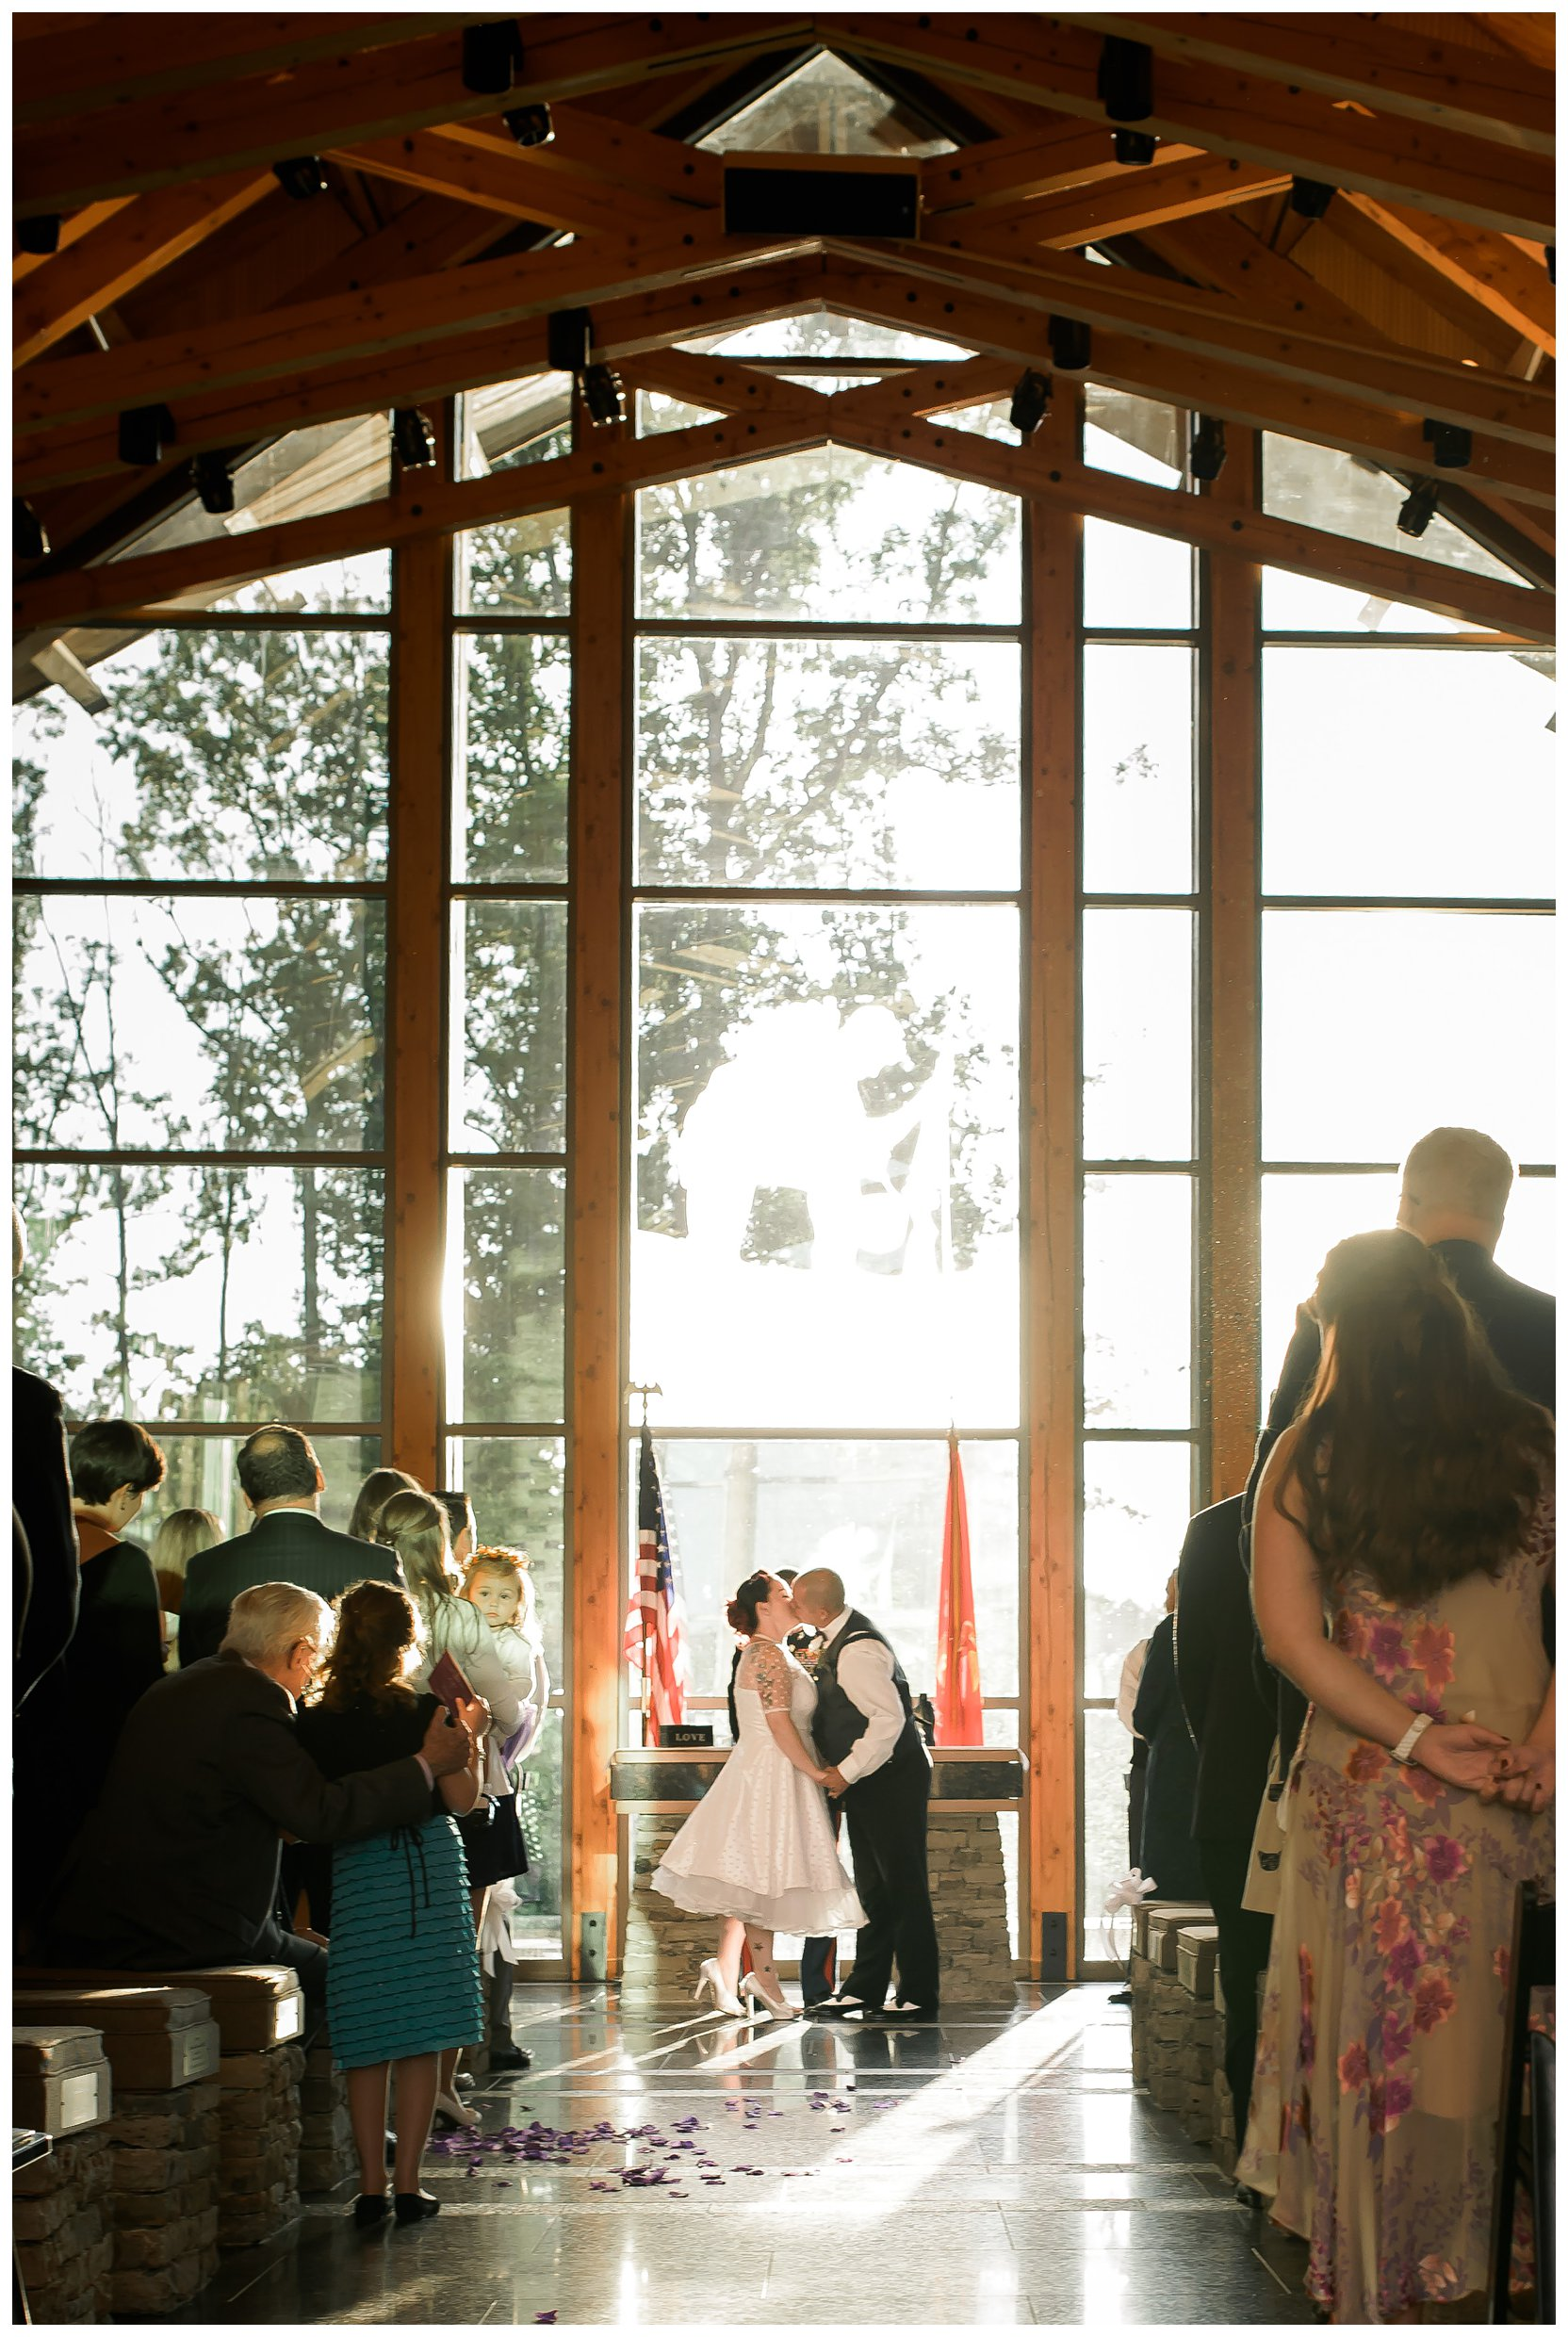 Kat and Dave | Married_Stephanie Kopf Photography-569.jpg